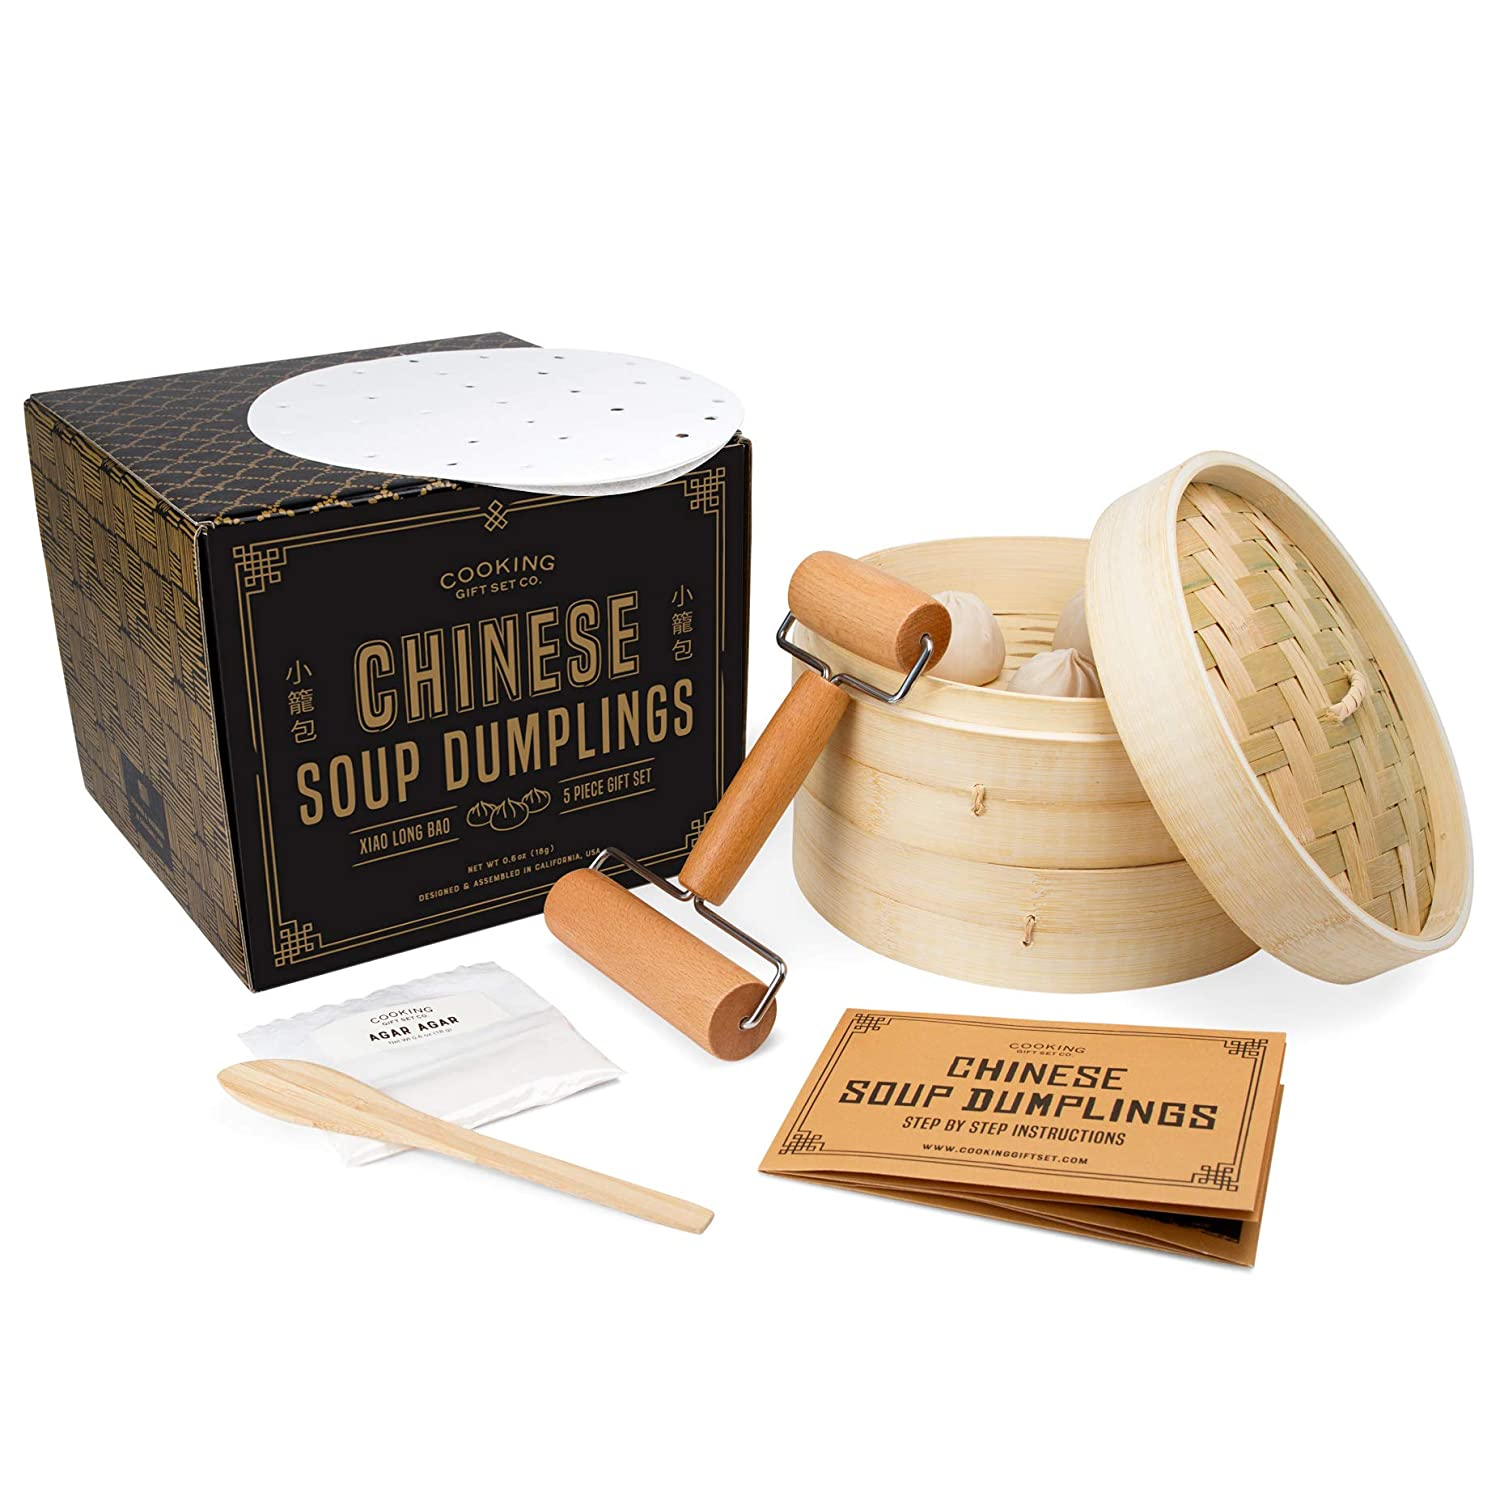 Cooking Gift Set | 5 PC Chinese Soup Dumpling Kit | Unique Gifts for Friends | Kitchen Gifts for Women Who Love to Cook